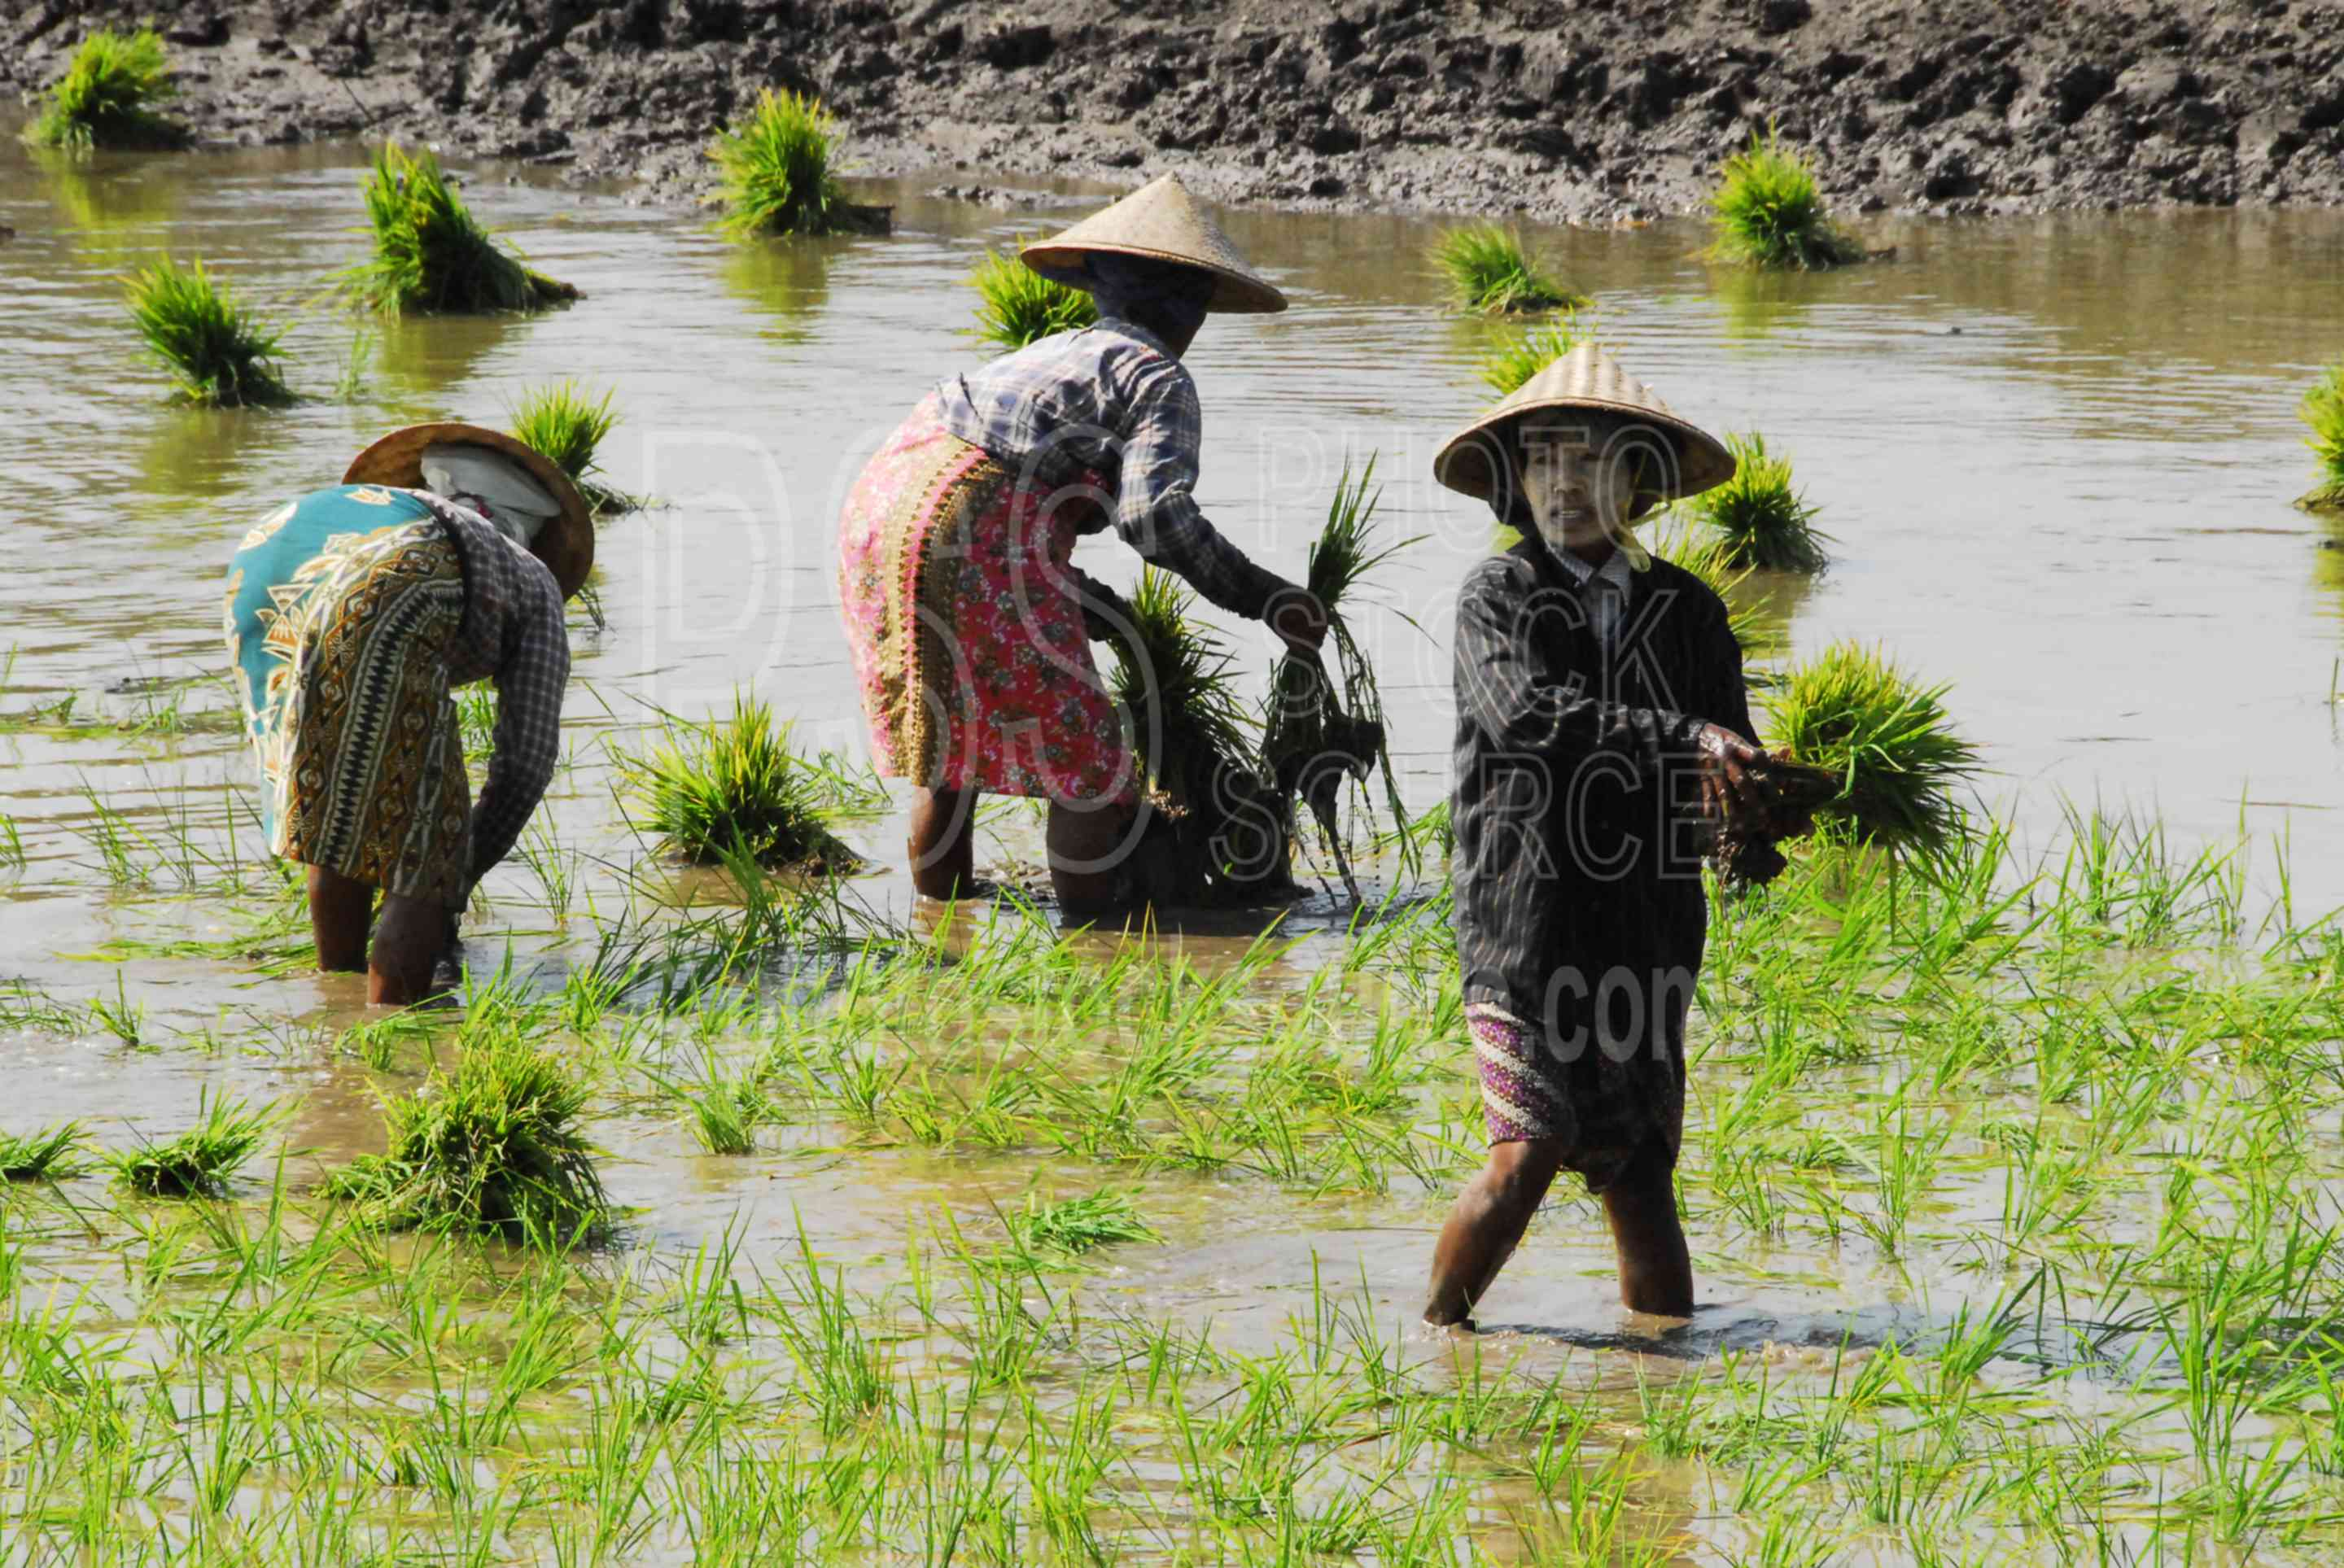 Rice Field Workers,myanmar,inwa,hathawaddy,ava,women,working,rice,fields,paddy,rice paddy,temple,people,thanaka